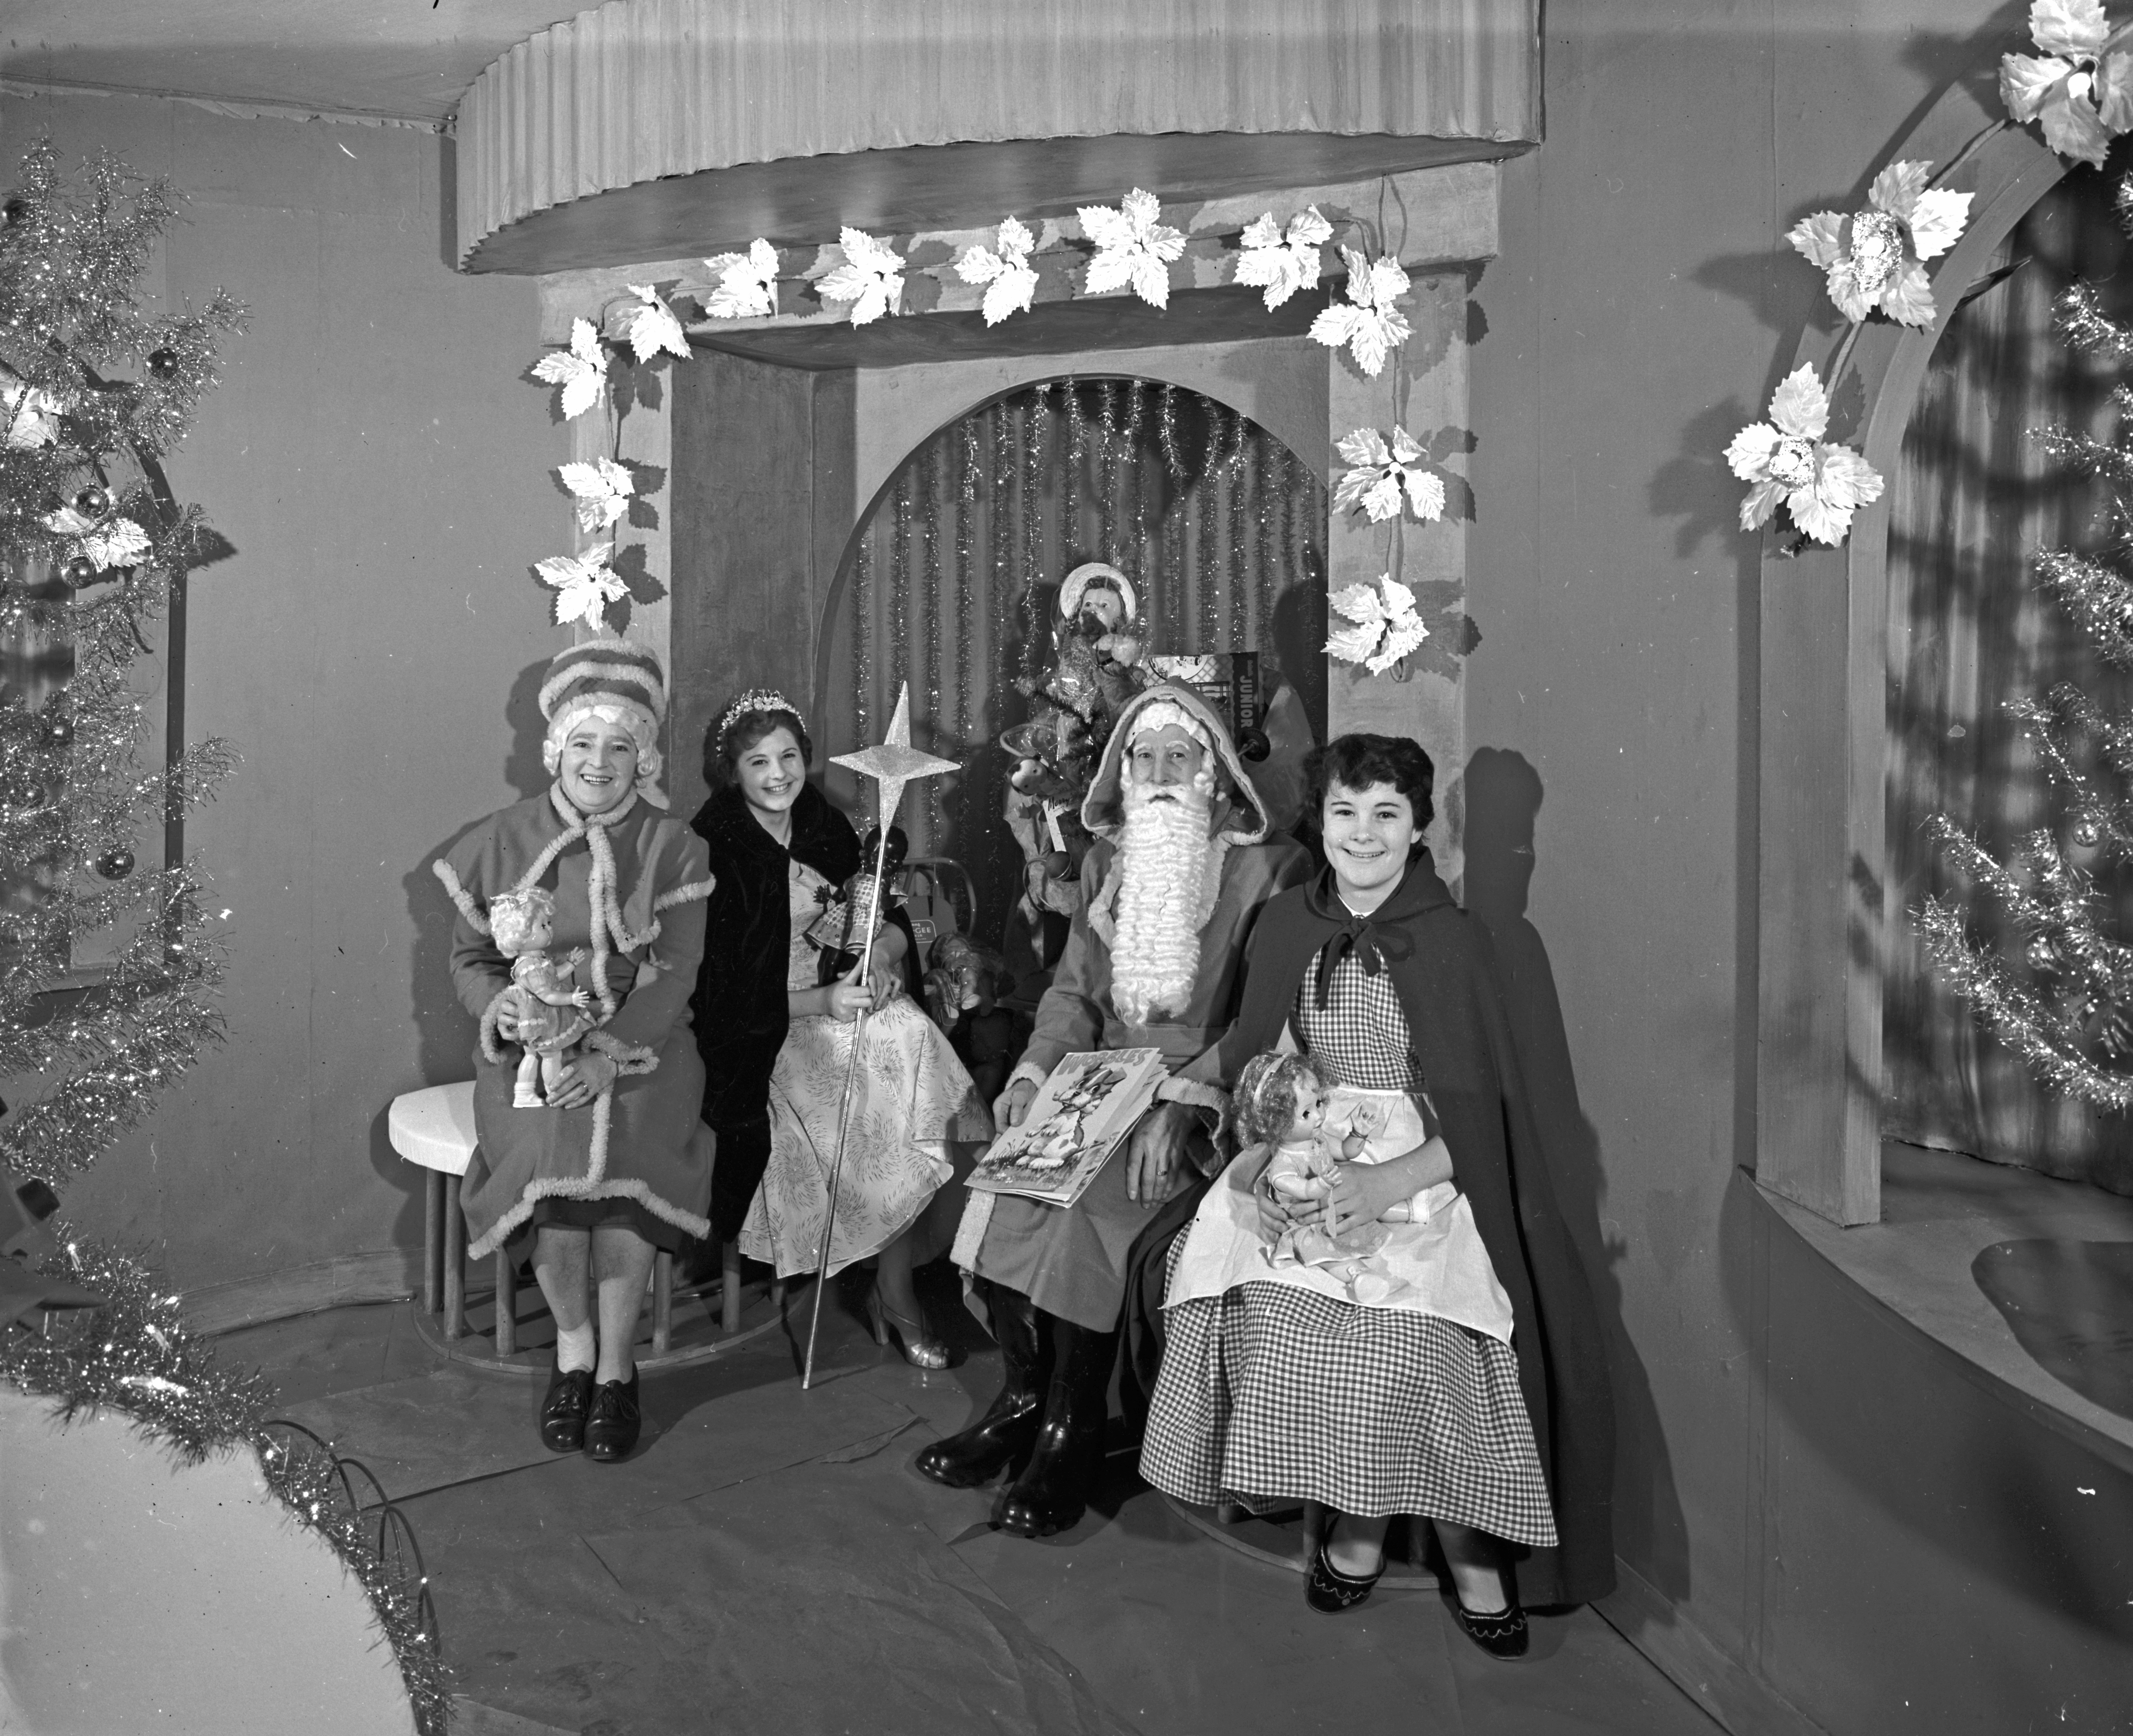 Busbys' Father Christmas and Grotto, Busbys' department store, Bradford